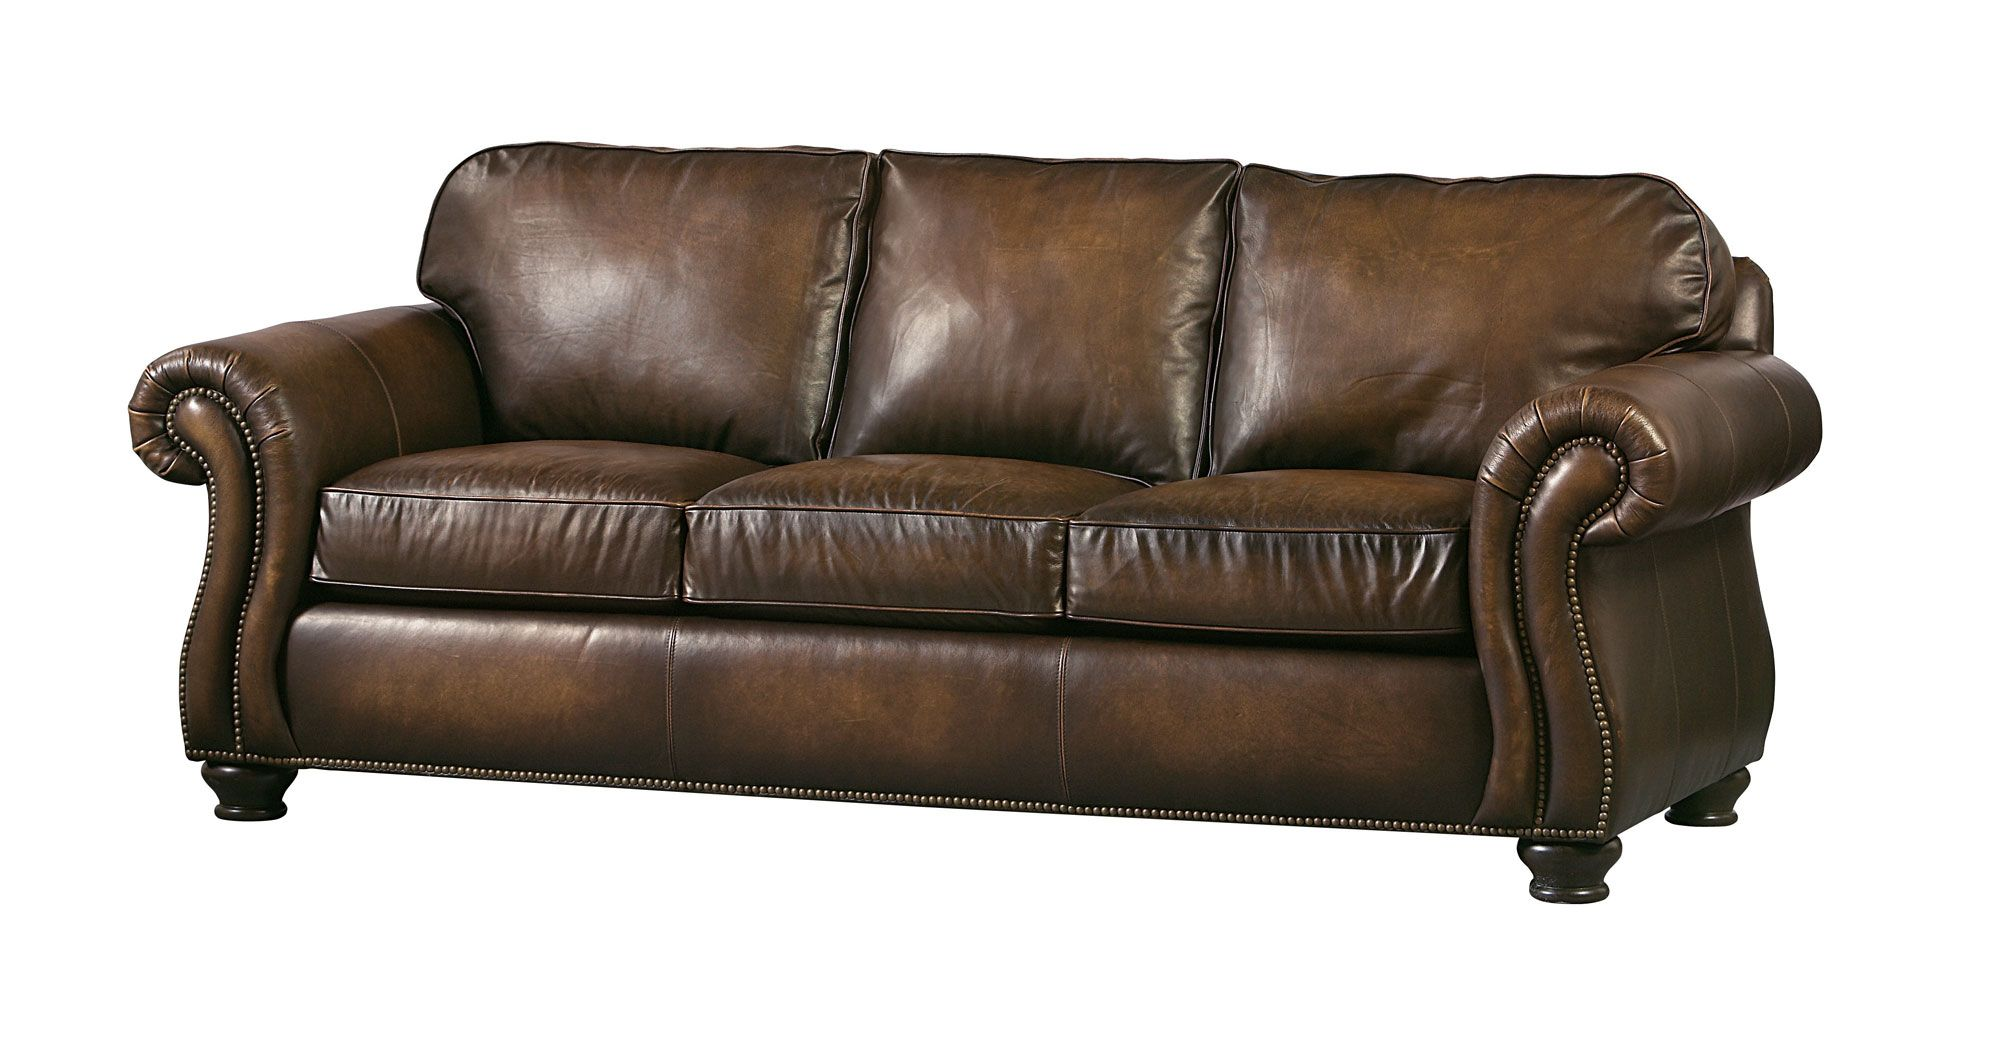 Sofa | Bernhardt (With images) | Brown leather sofa